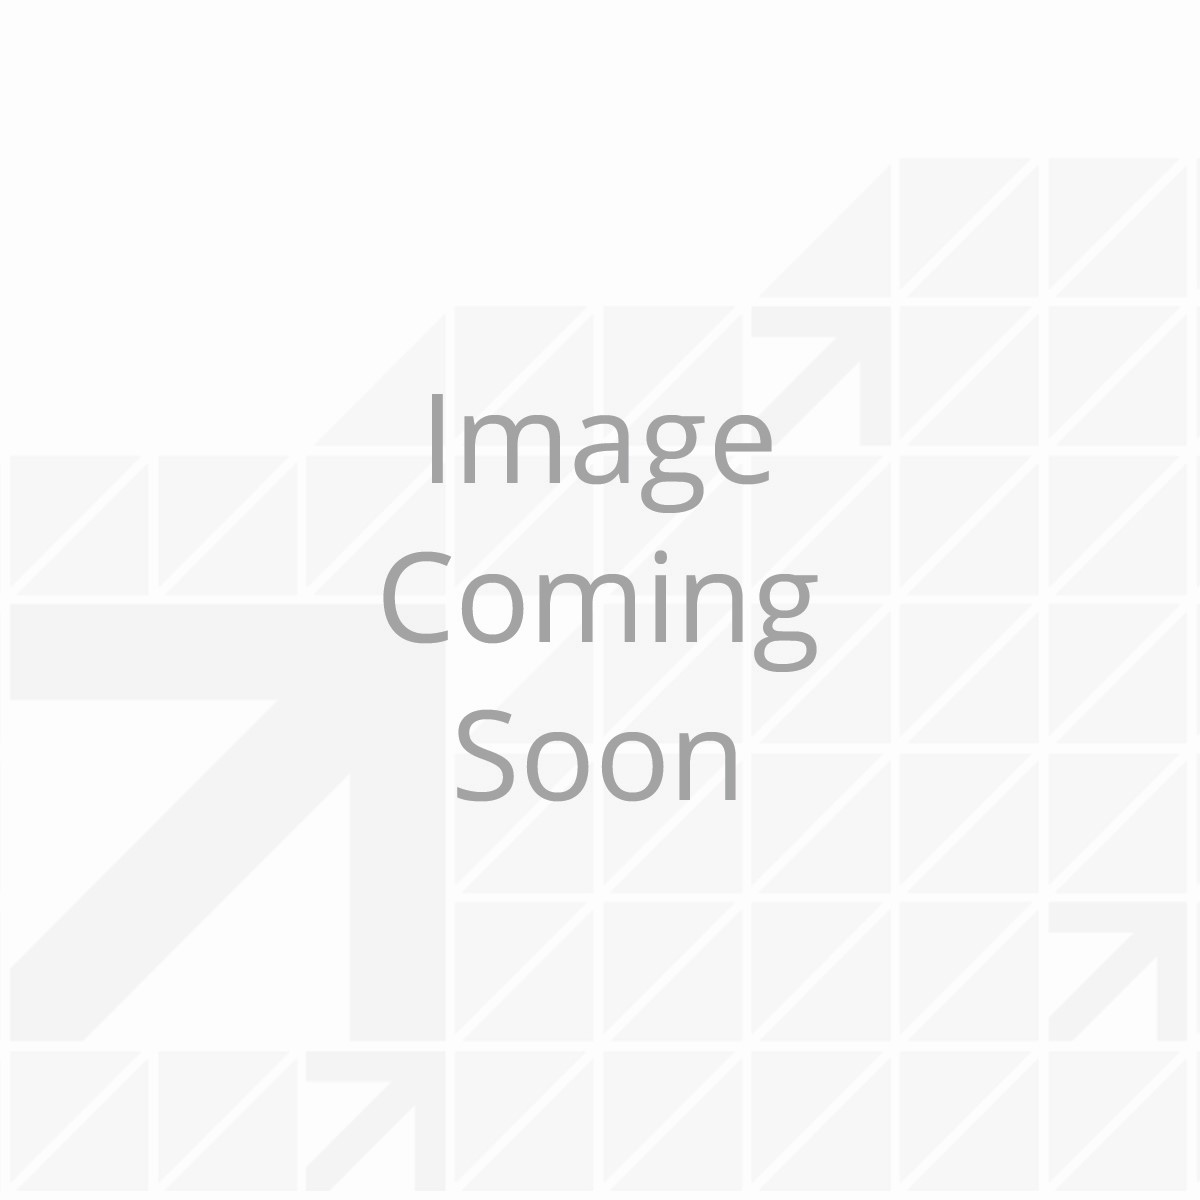 Rooftop Air Conditioner - Various Options